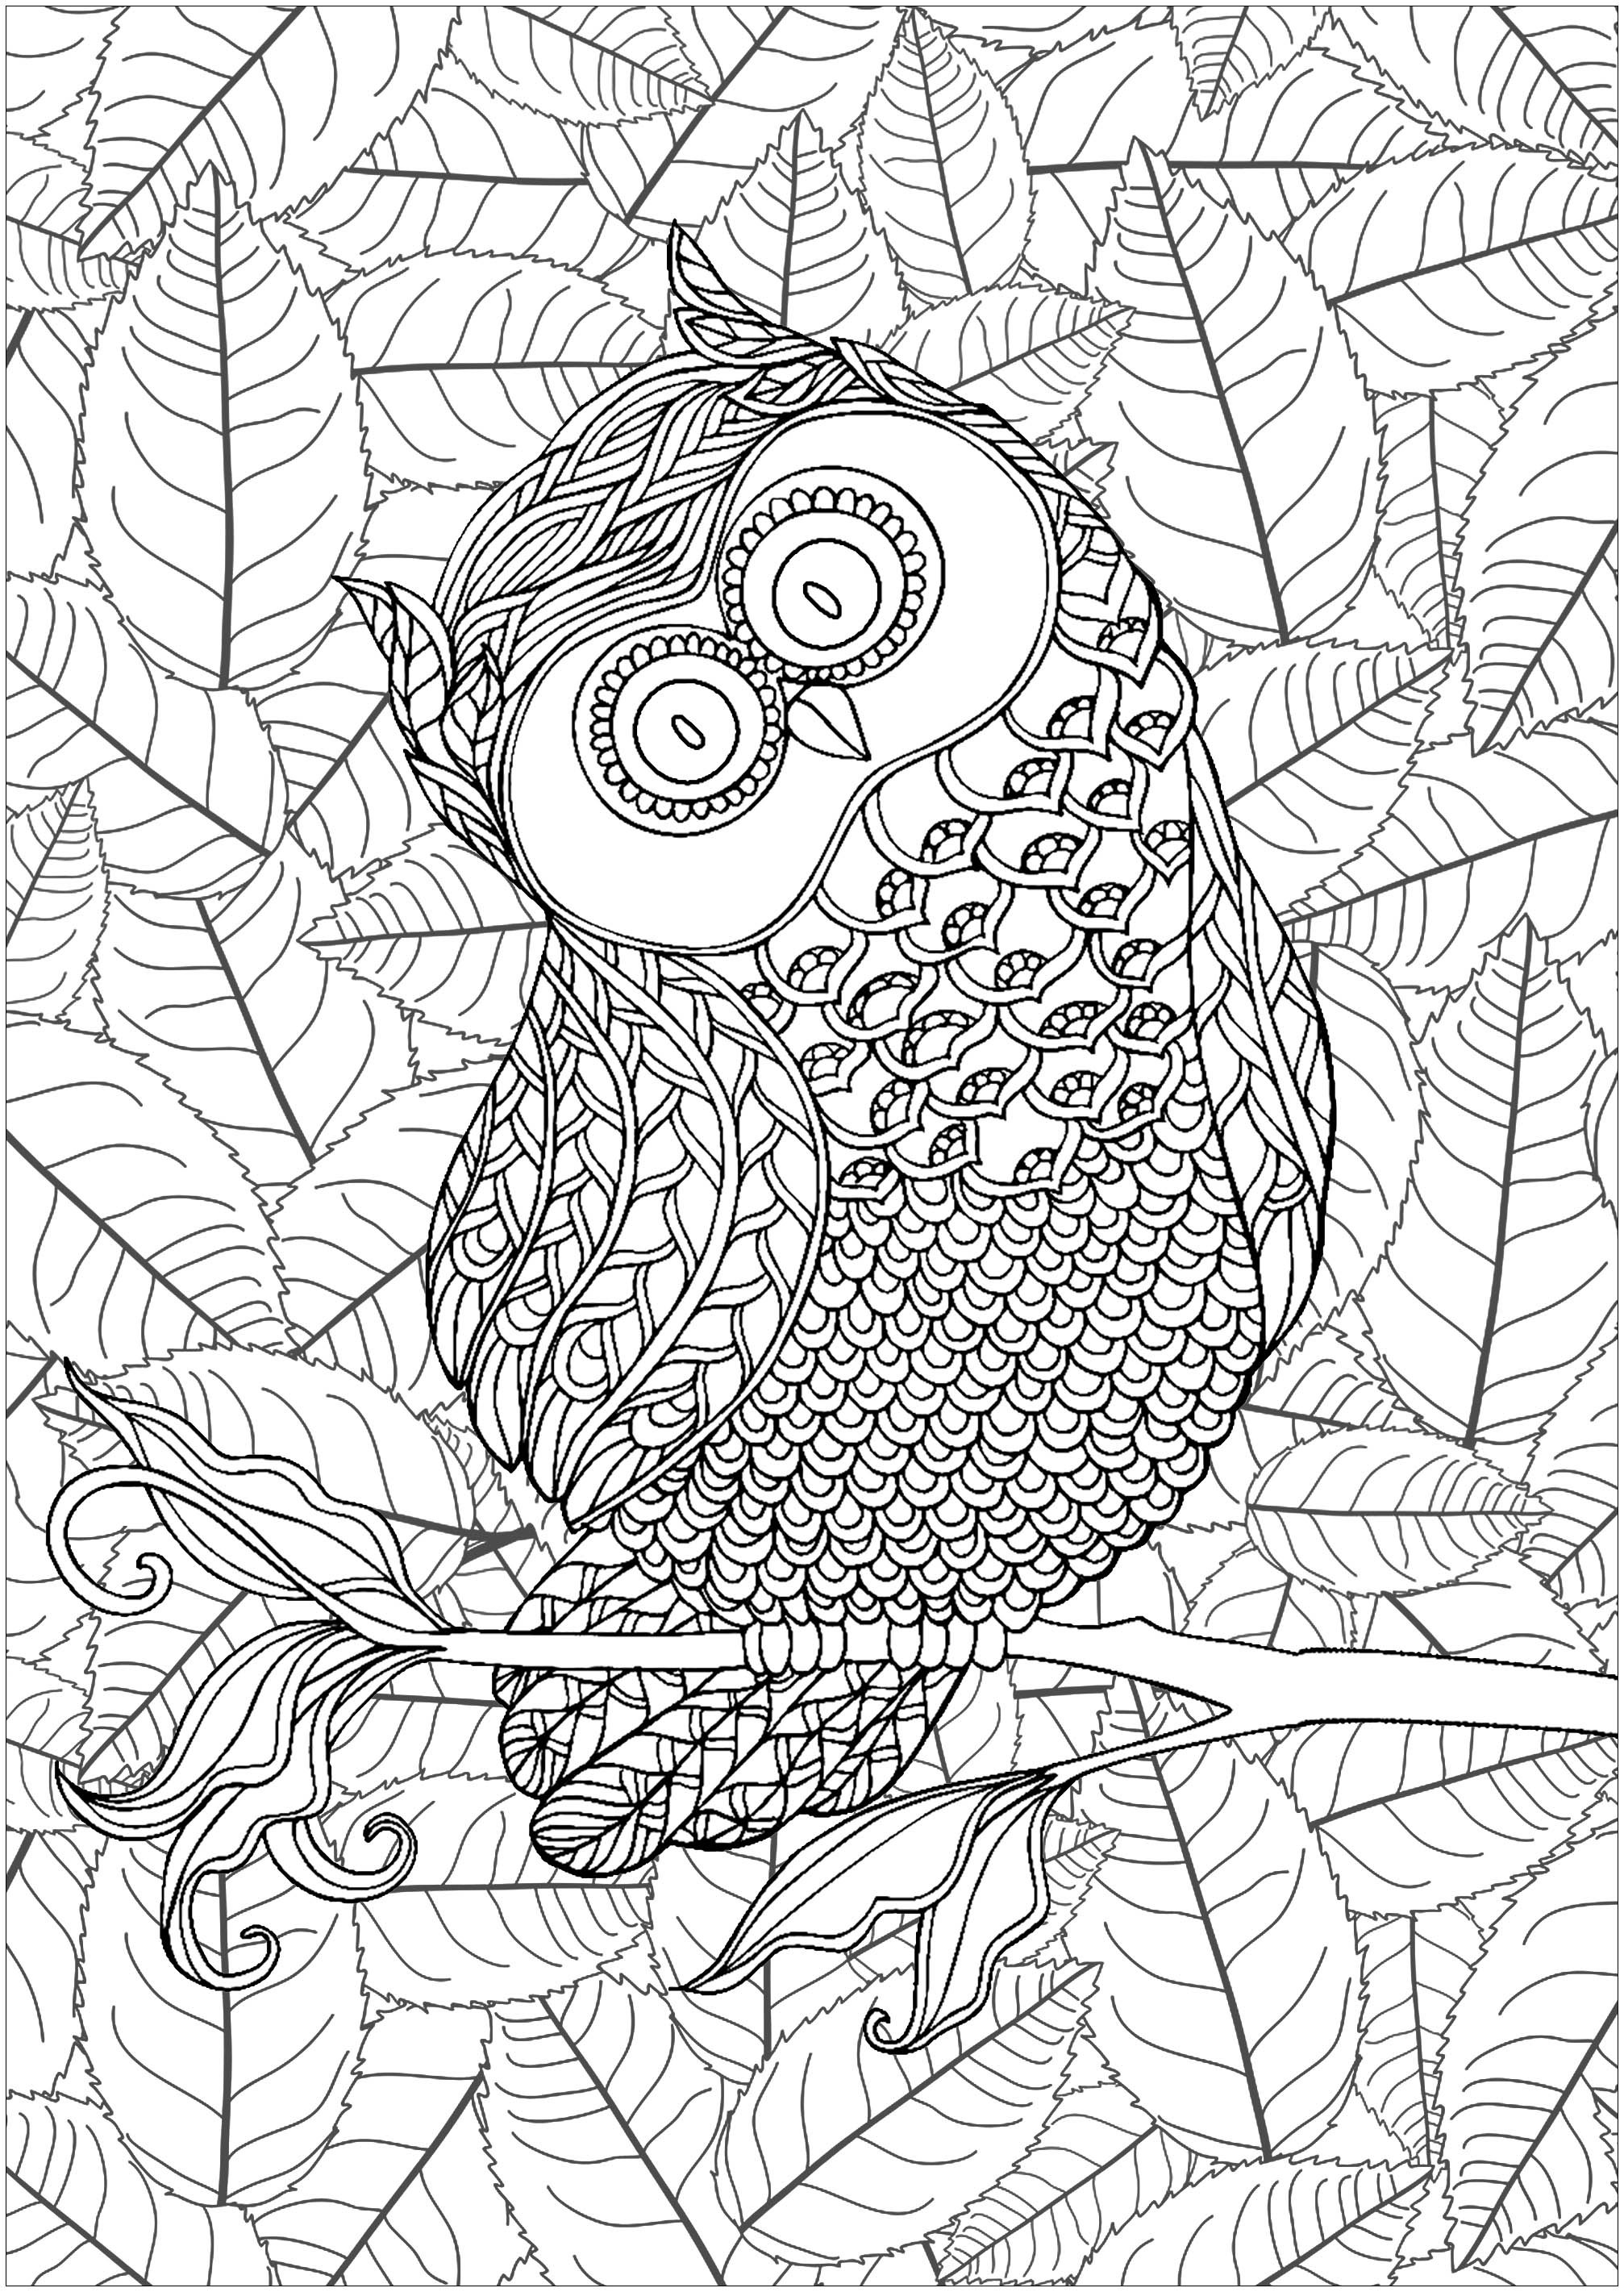 17 Printable Coloring Pages To Help You Instantly Start De Stressing